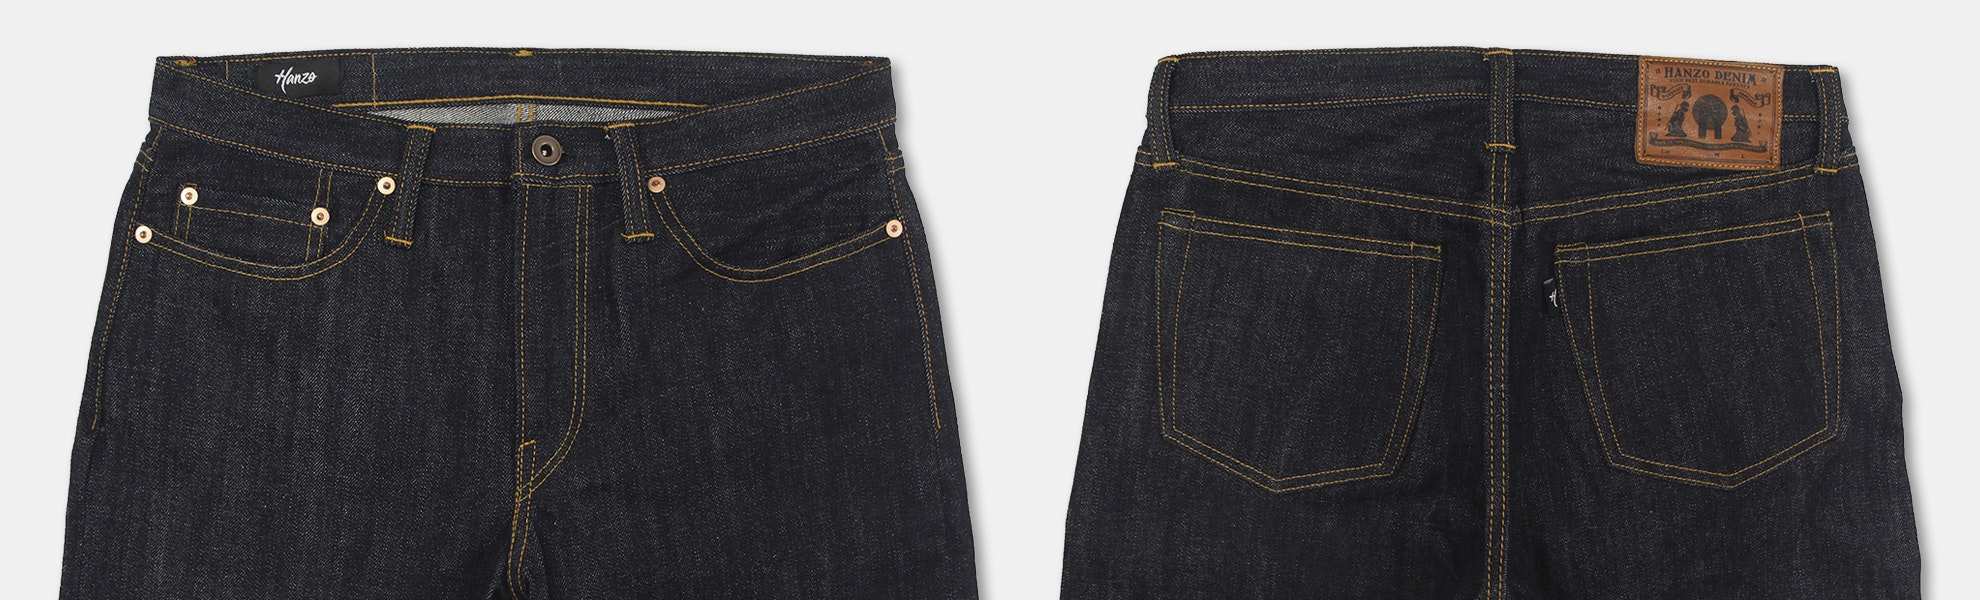 Hanzo 710 Blue Indigo 14oz Denim